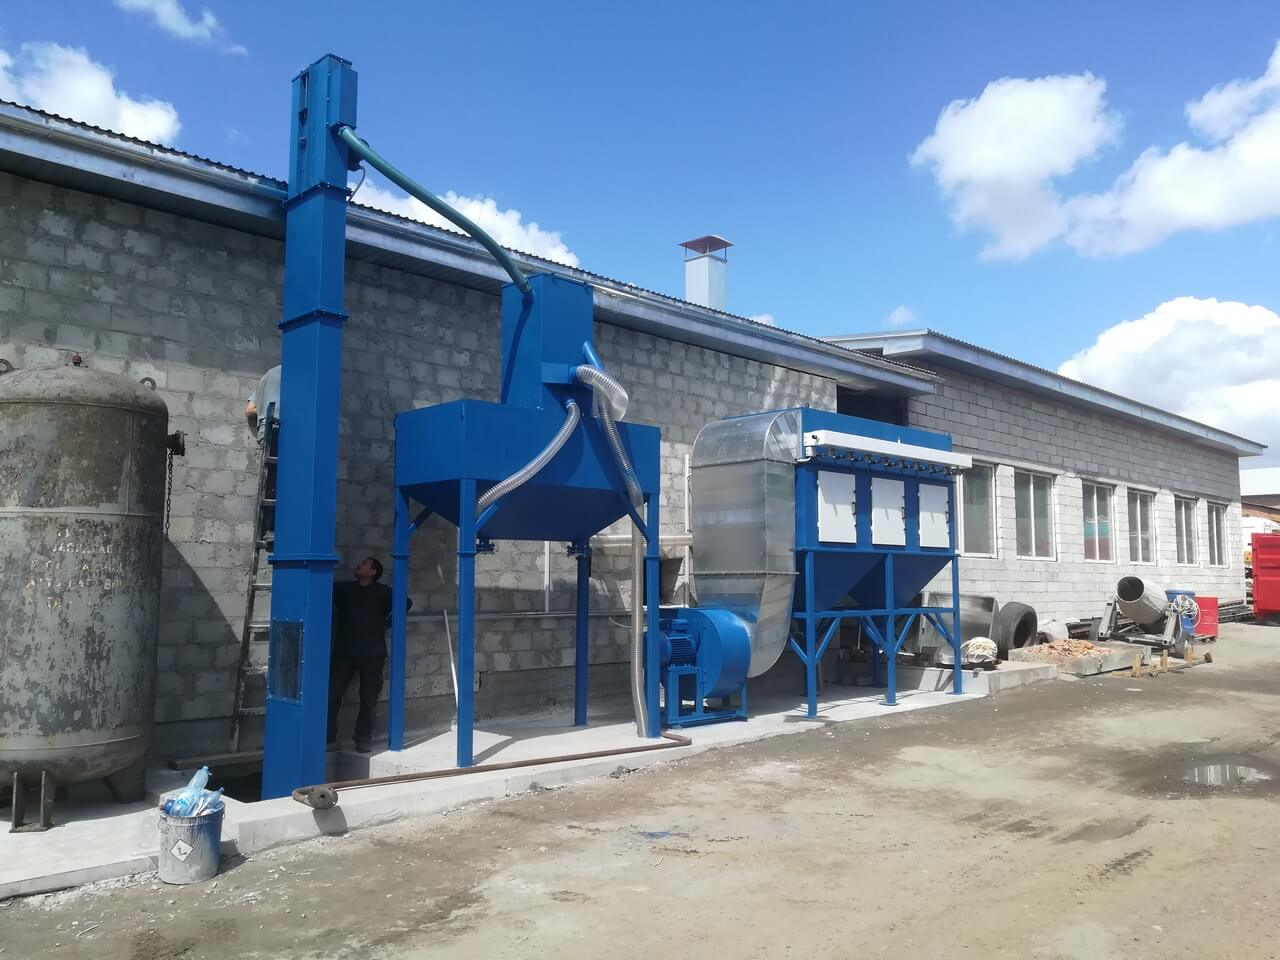 ABRASIVE BLASTING CHAMBER FOR BADOR FROM TWEKO FACTORY